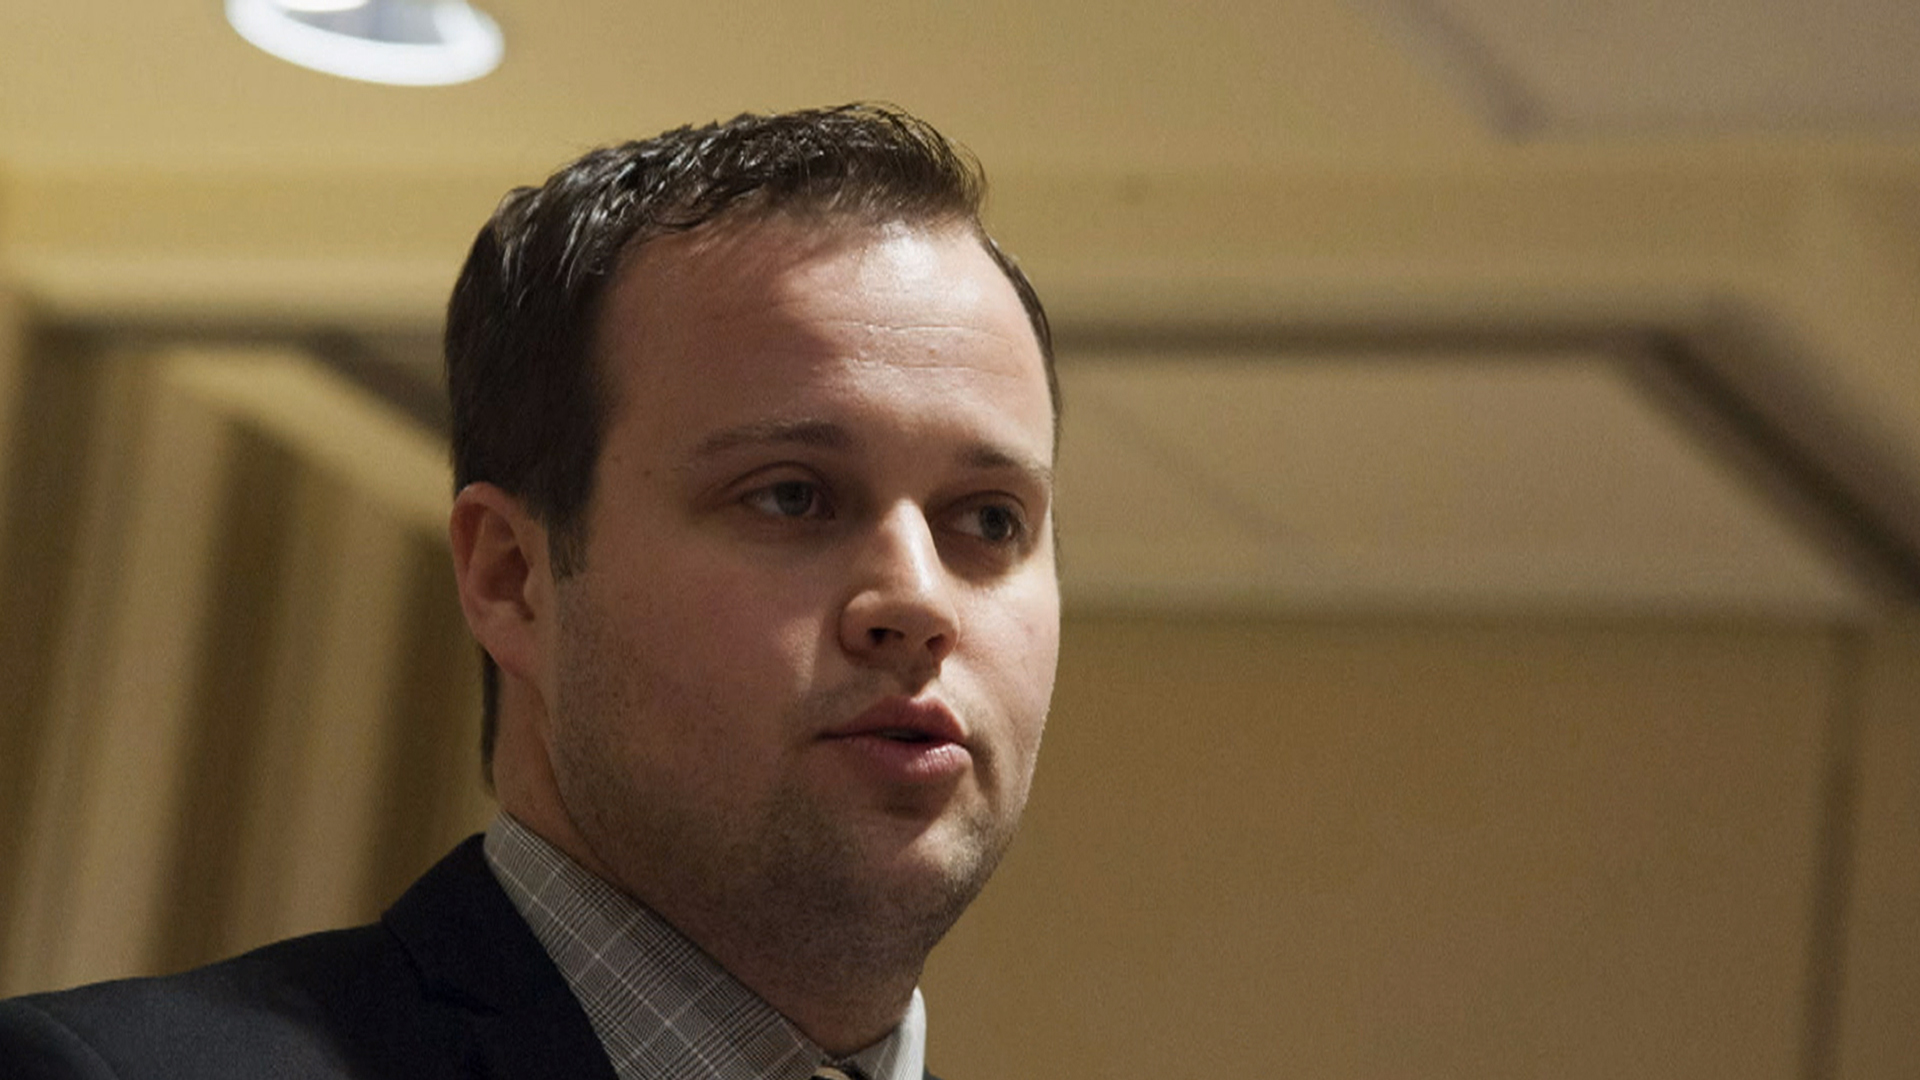 """Josh Duggar wearing a suit and tie looking at the camera: Police records show Josh Duggar was accused of molesting five underage girls in 2002. The eldest of the 19 children of Jim Bob and Michelle Duggar released a statement saying, """"I acted inexcusably for which I am extremely sorry."""""""